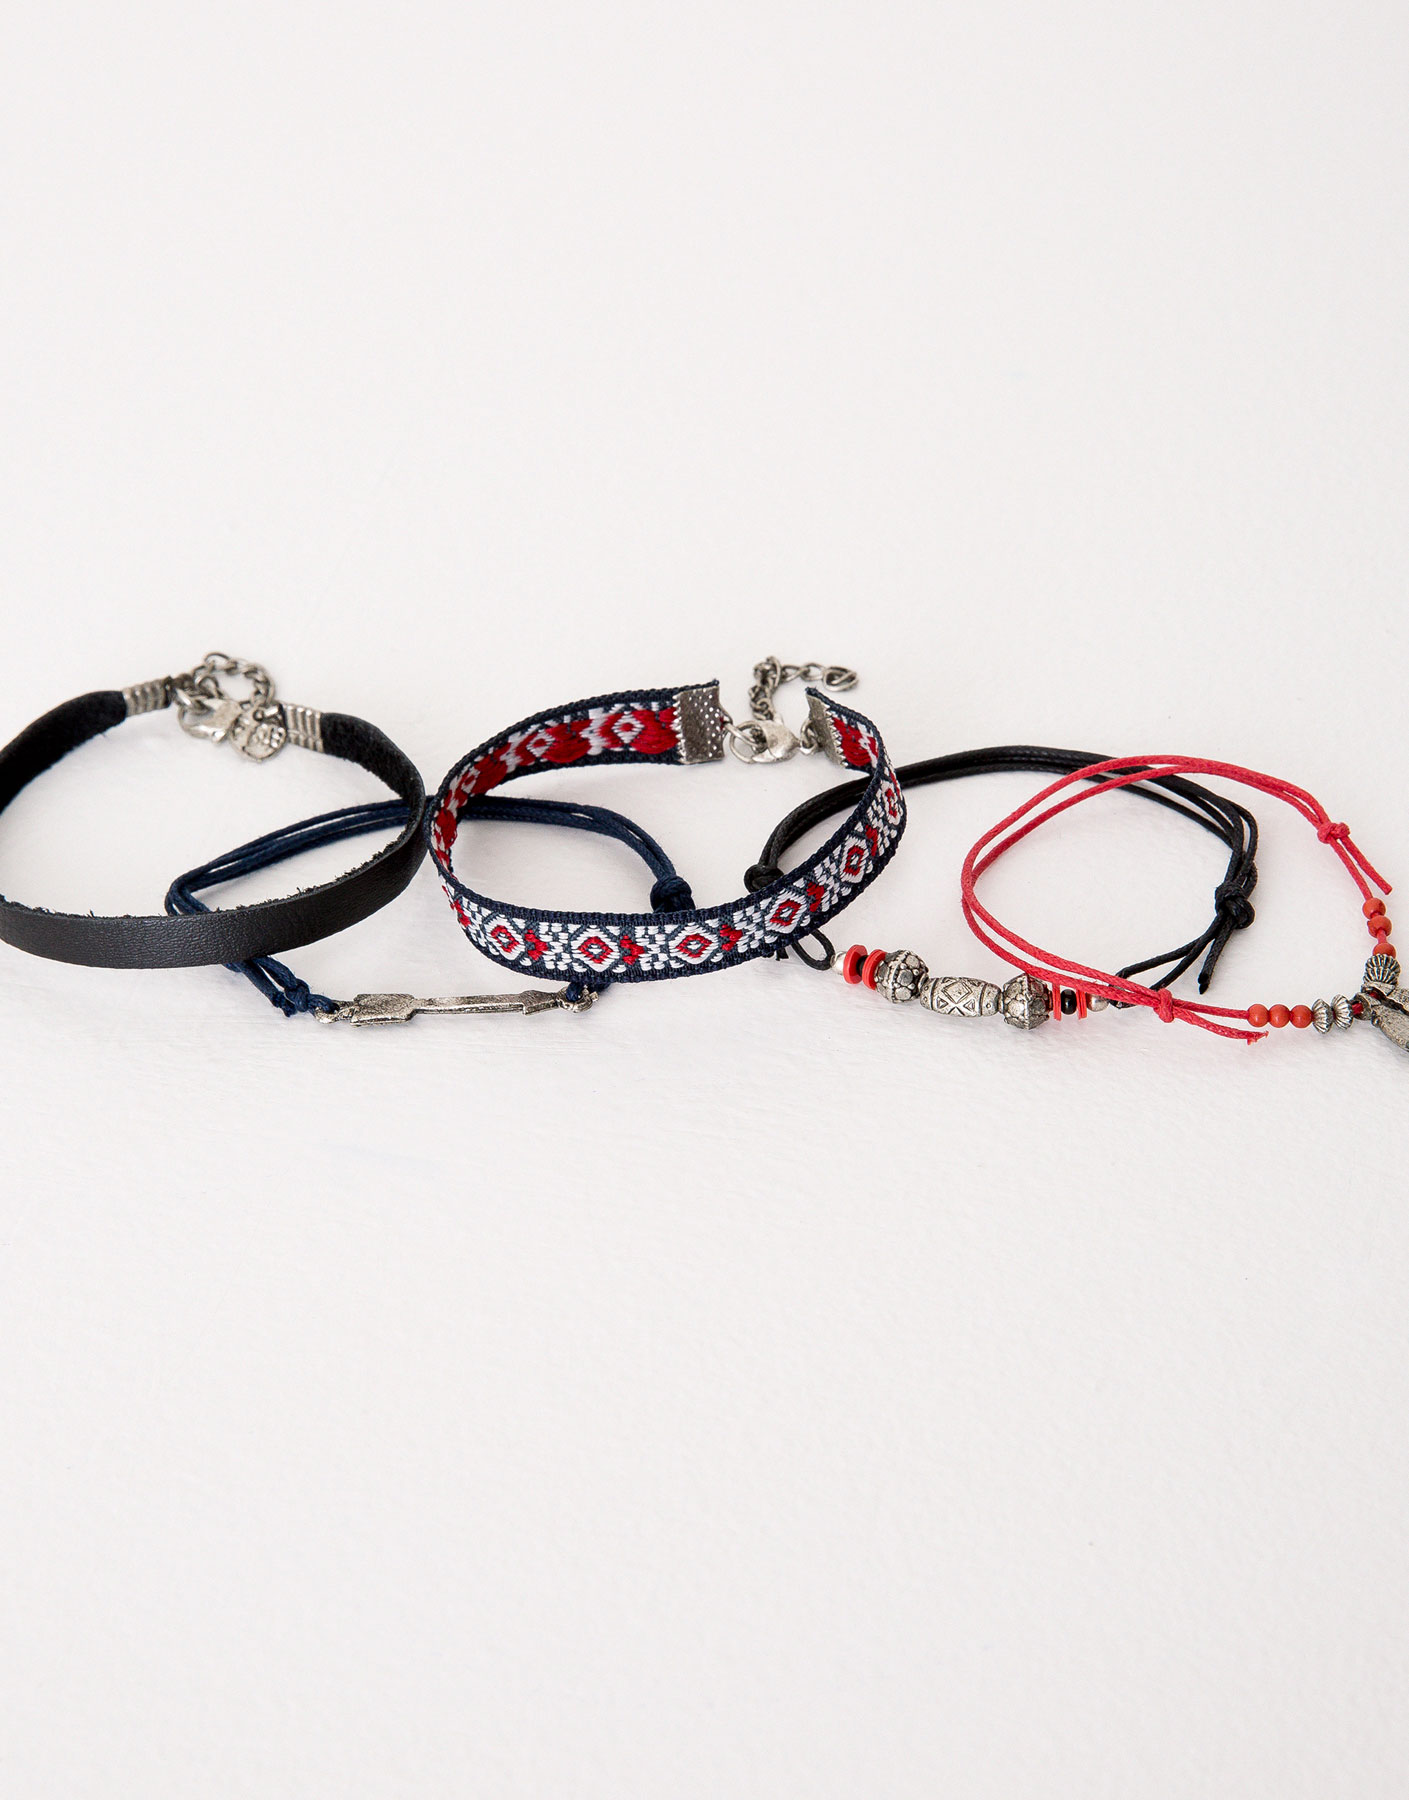 Pack of 5 assorted bracelets